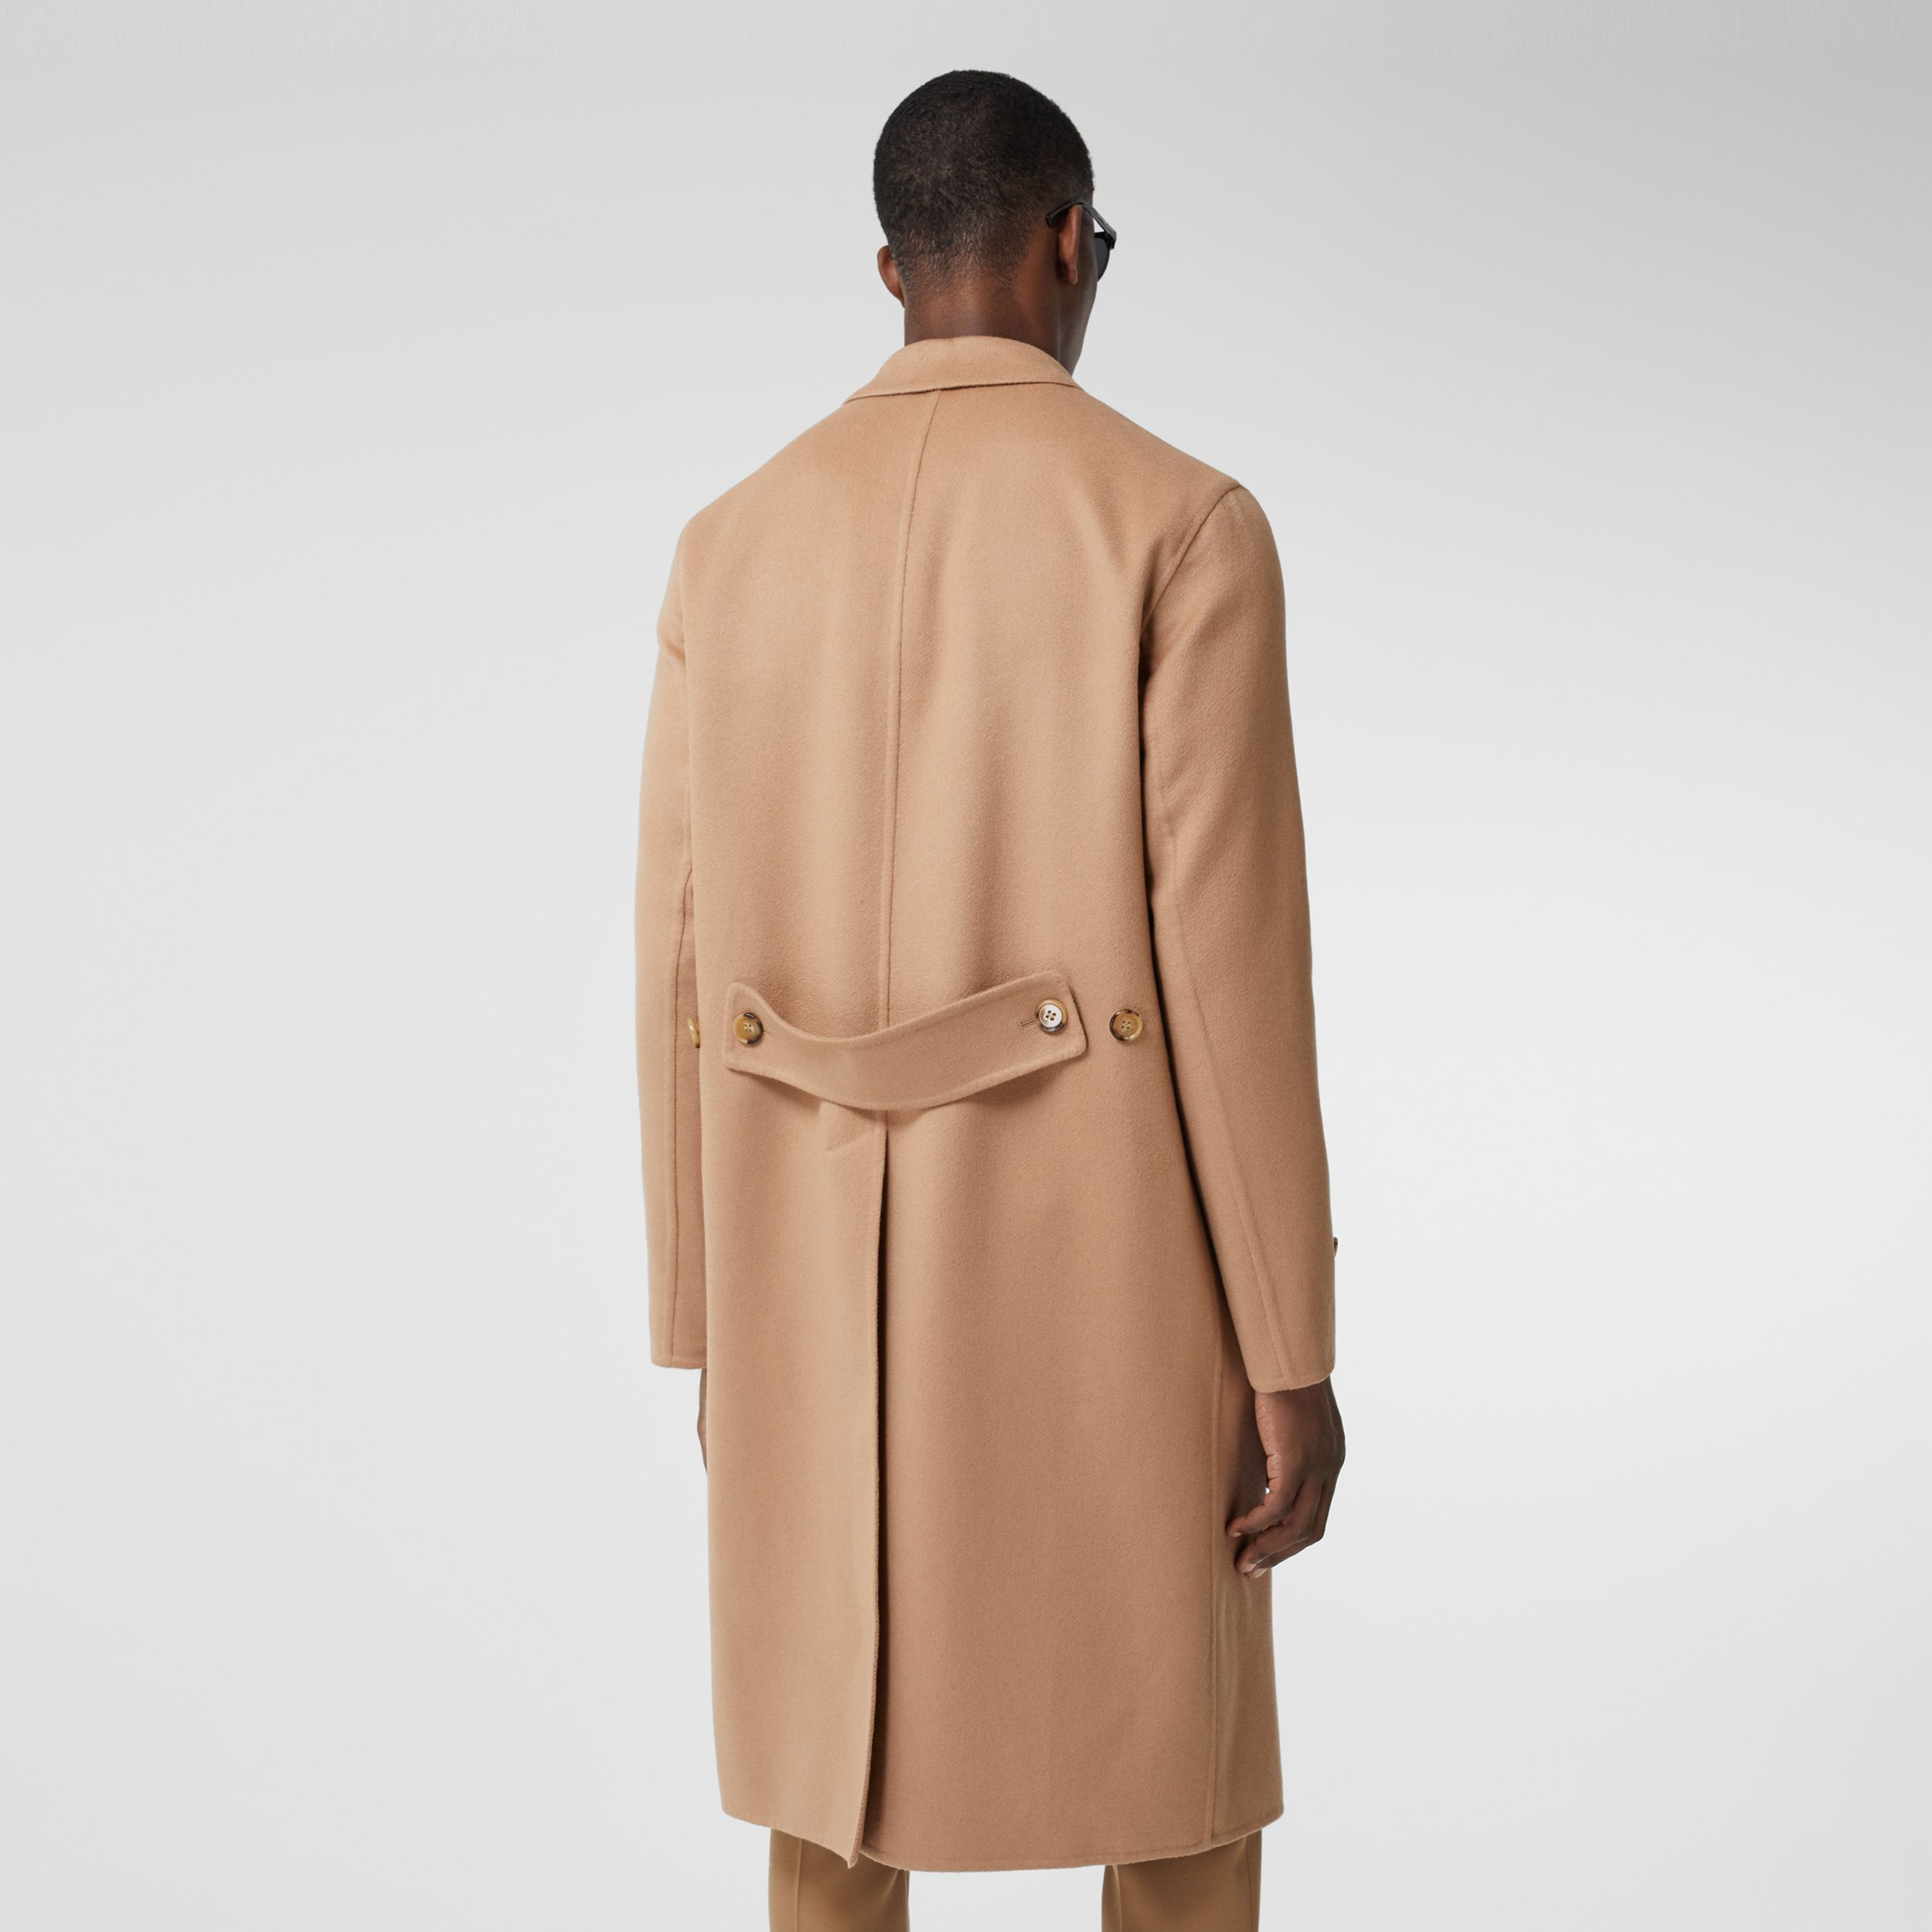 Double-faced Regenerated Cashmere Lab Coat in Camel - Men | Burberry - 3